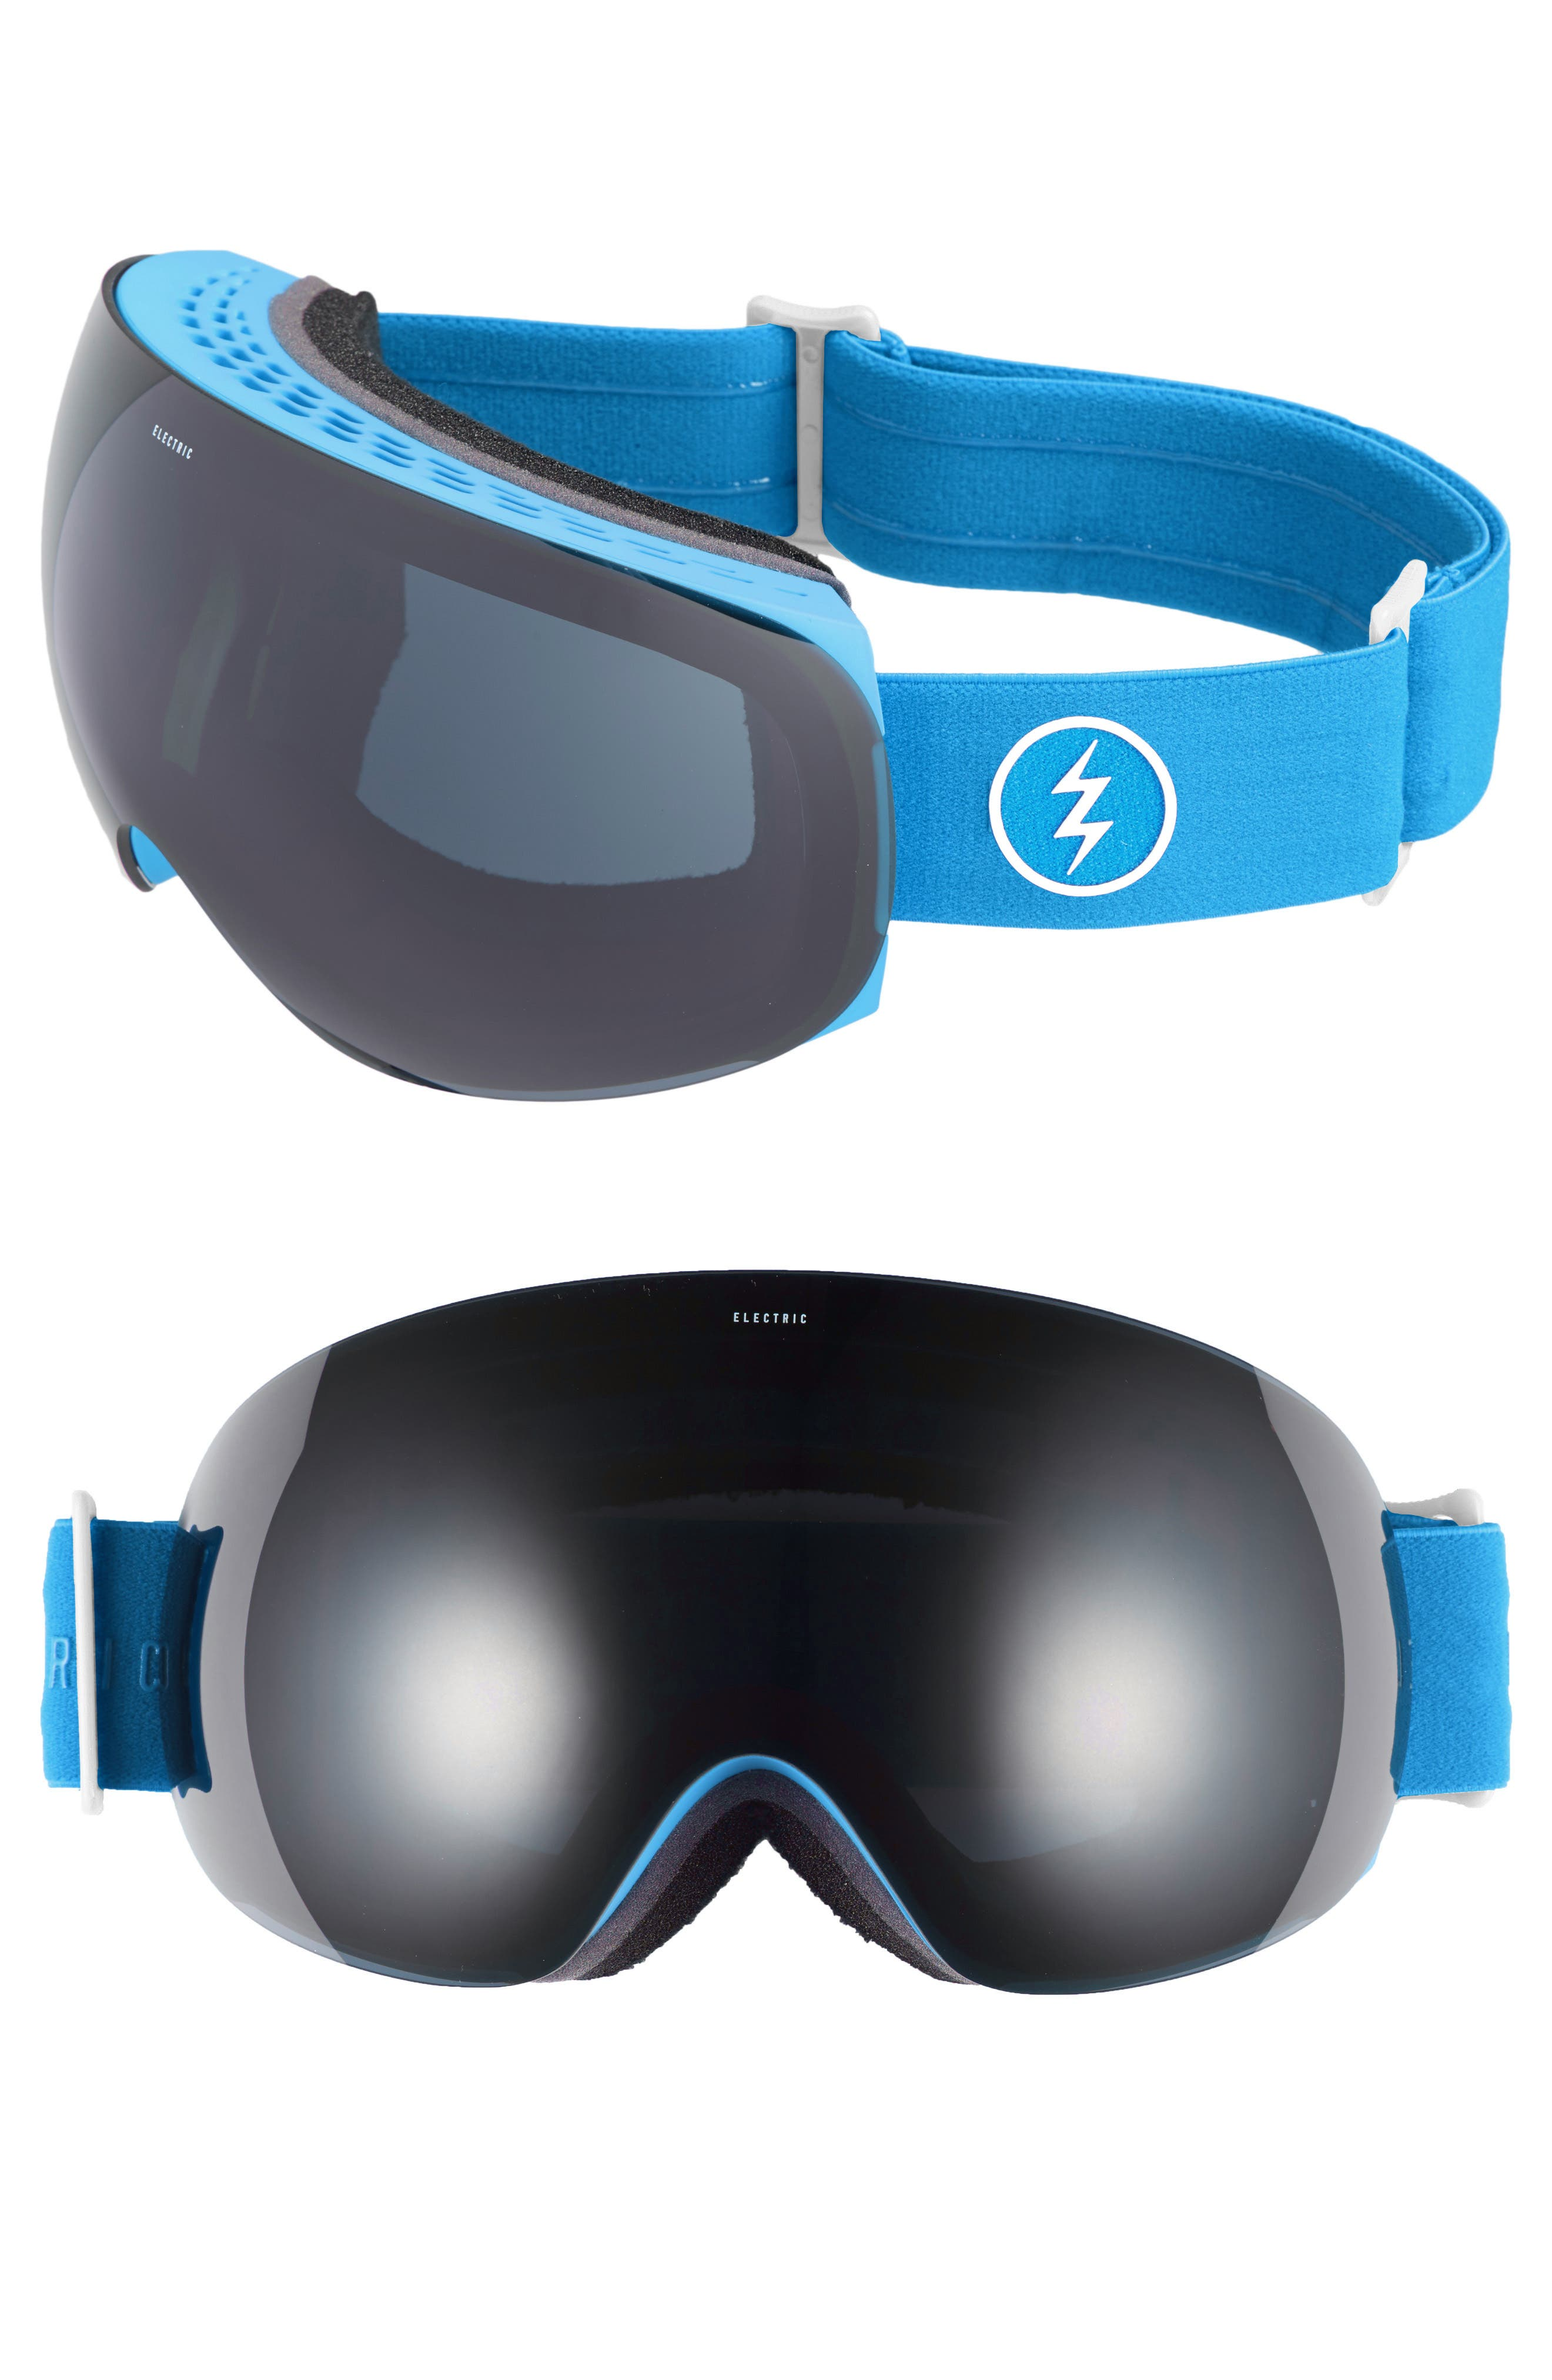 Main Image - ELECTRIC EG3 254mm Snow Goggles